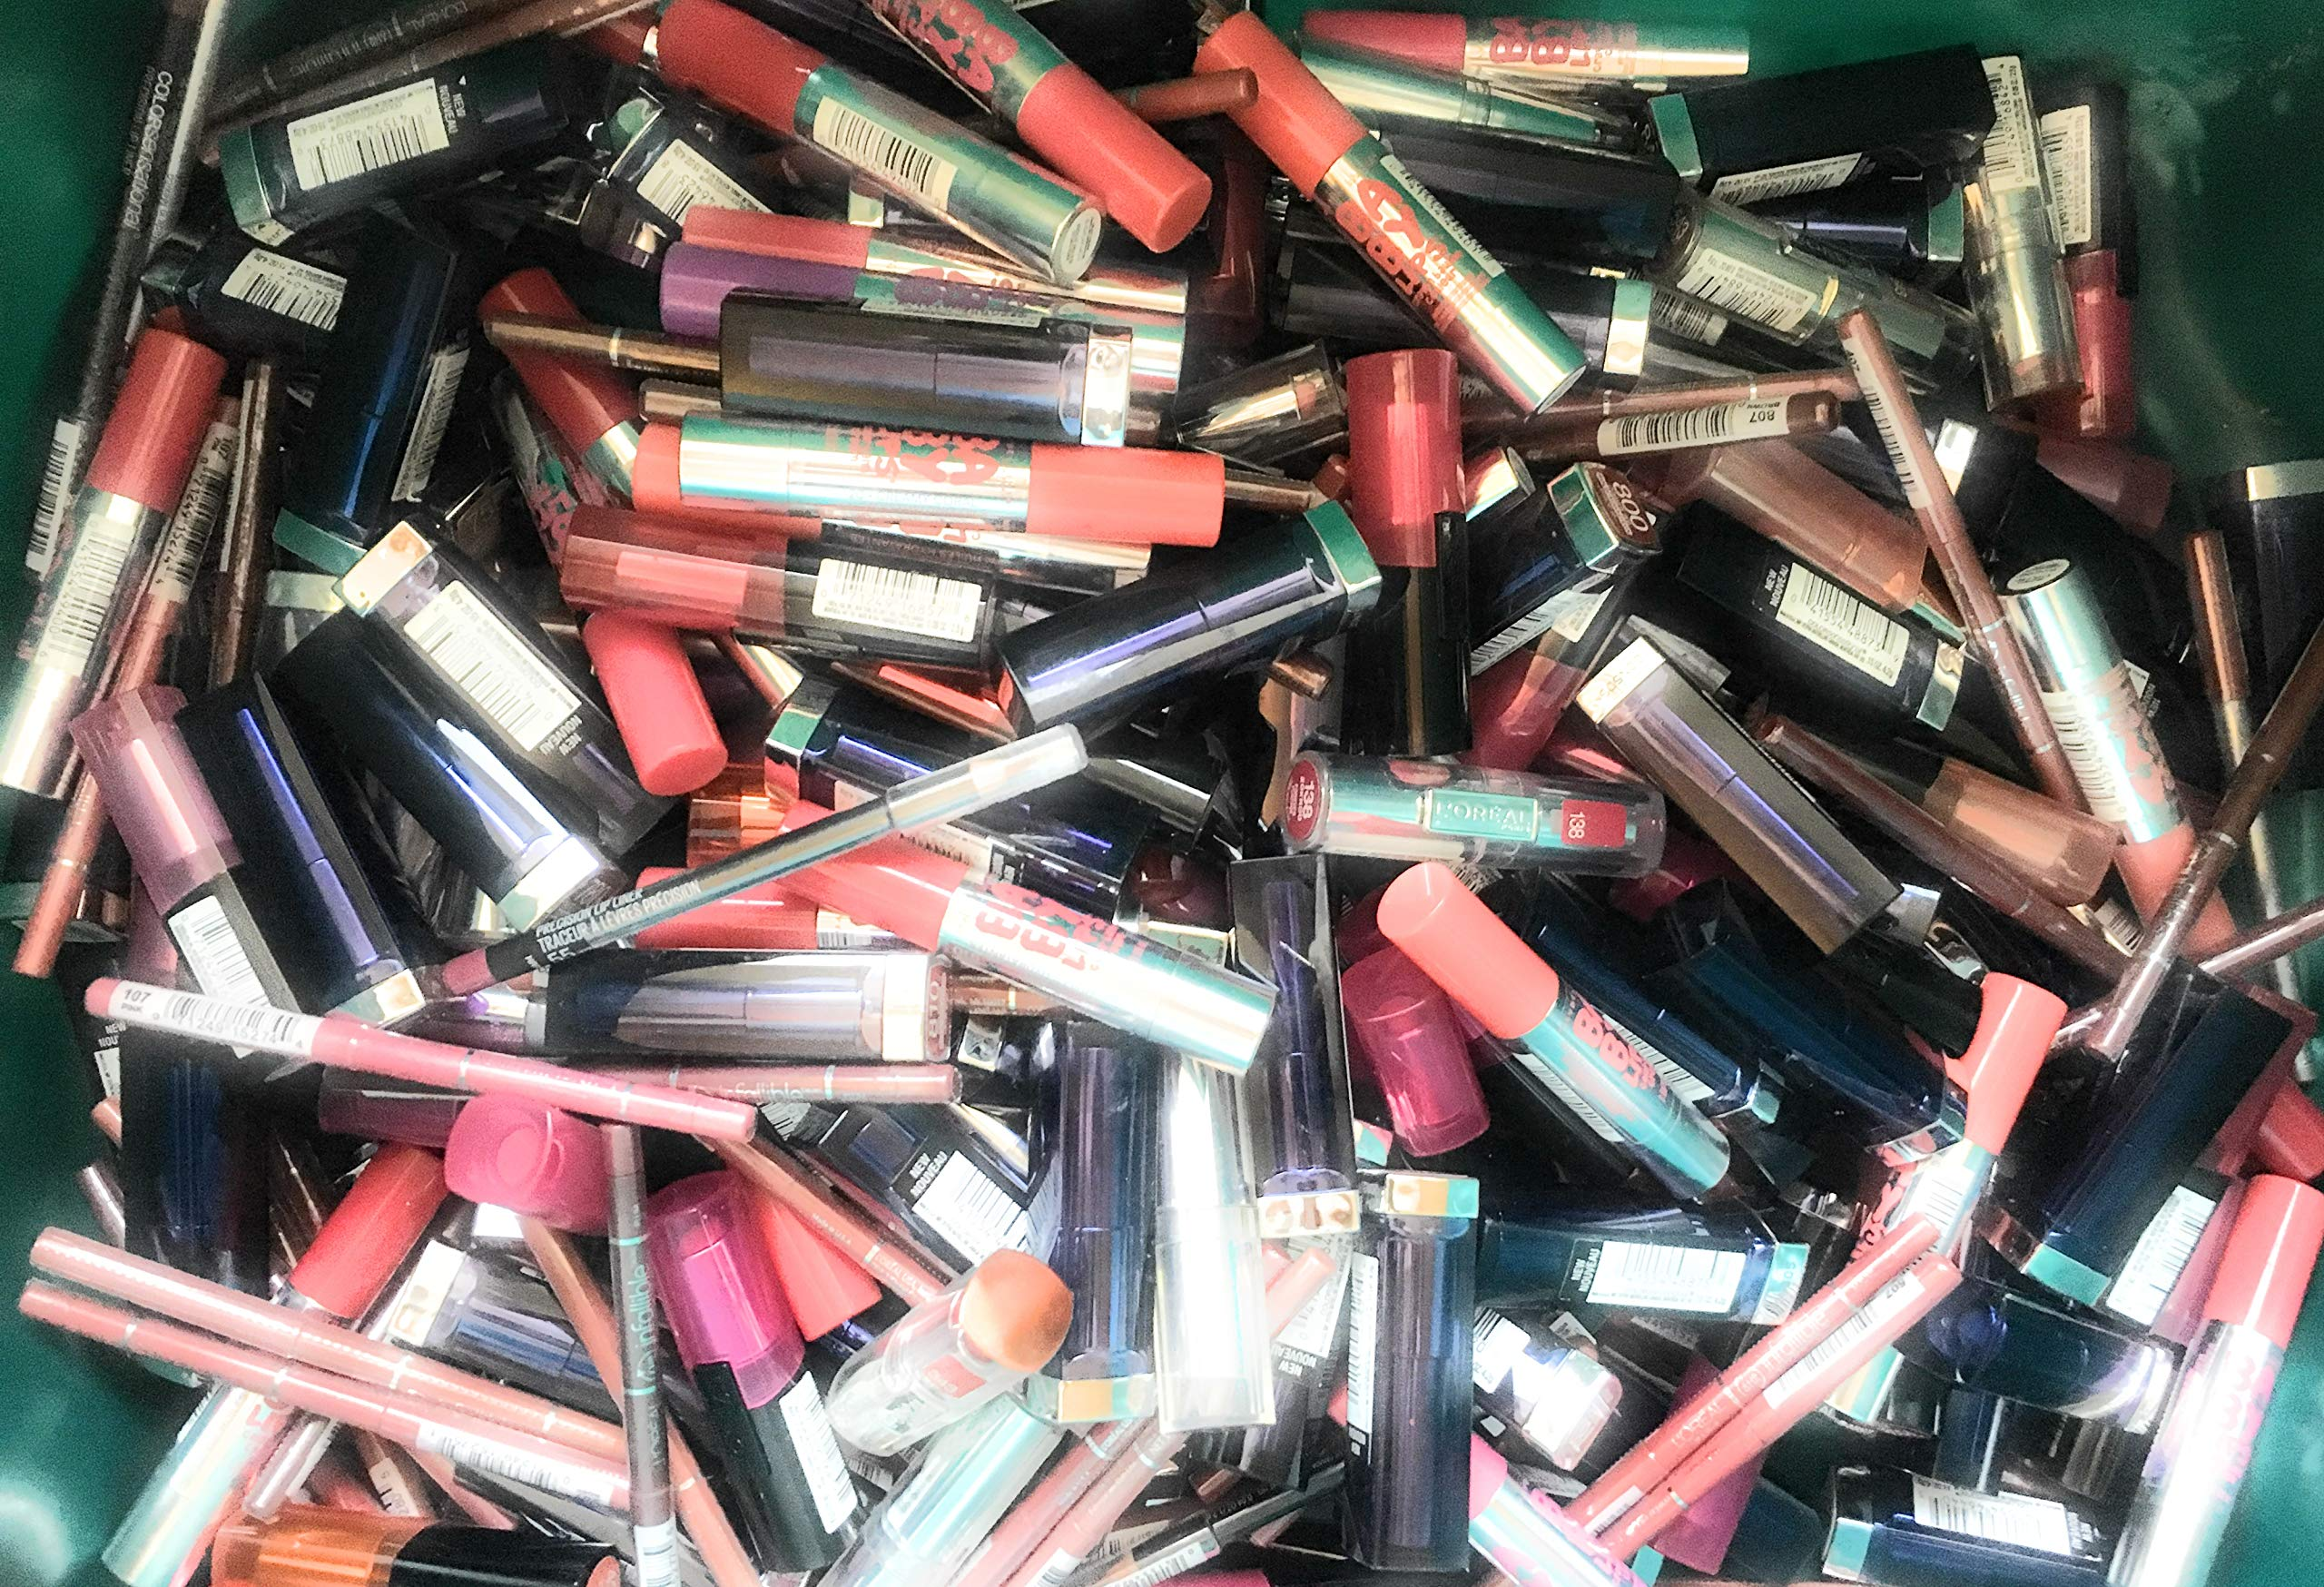 25 Assorted Piece Lot of Name Brand Makeup Wholesale, No Dups by Unknown (Image #3)